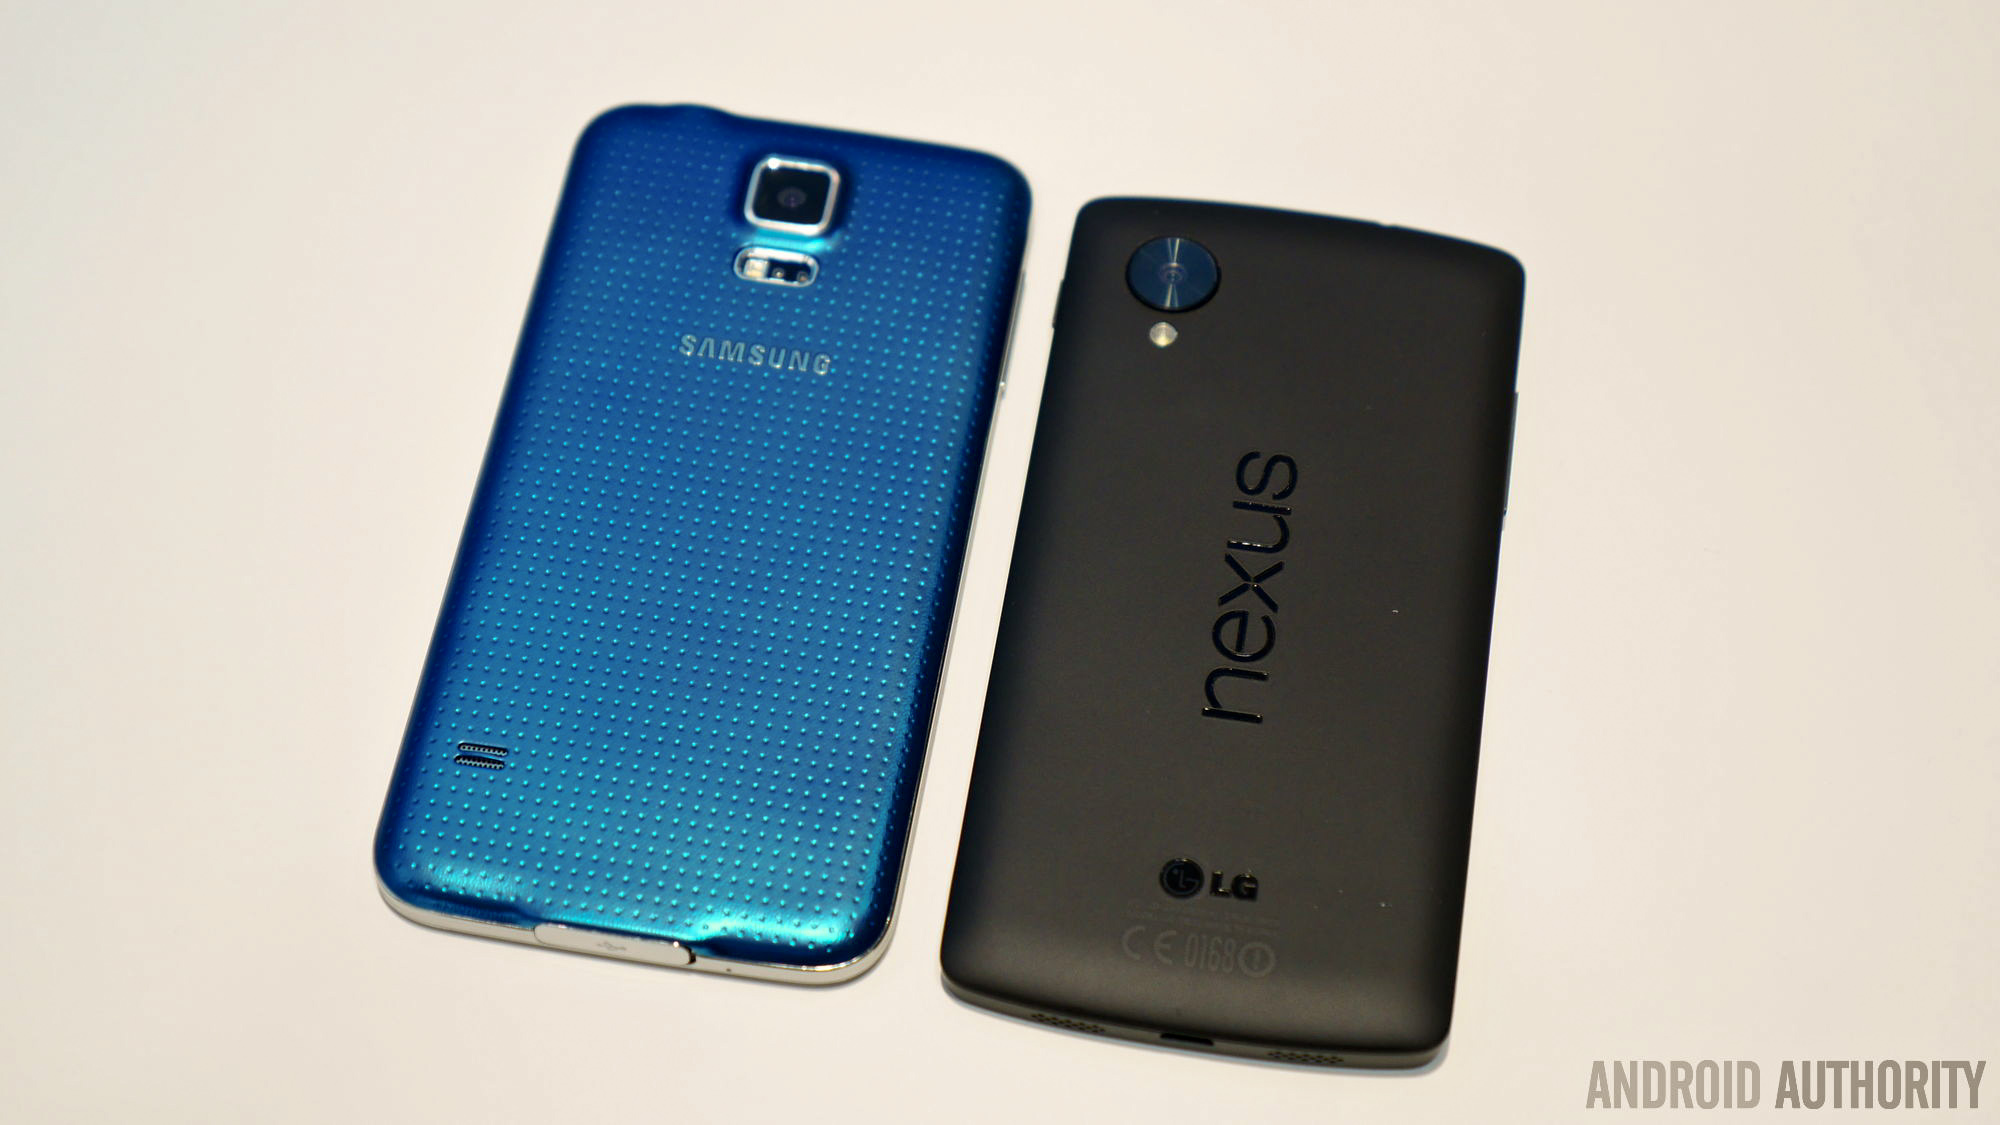 samsung galaxy s5 vs nexus 5 4